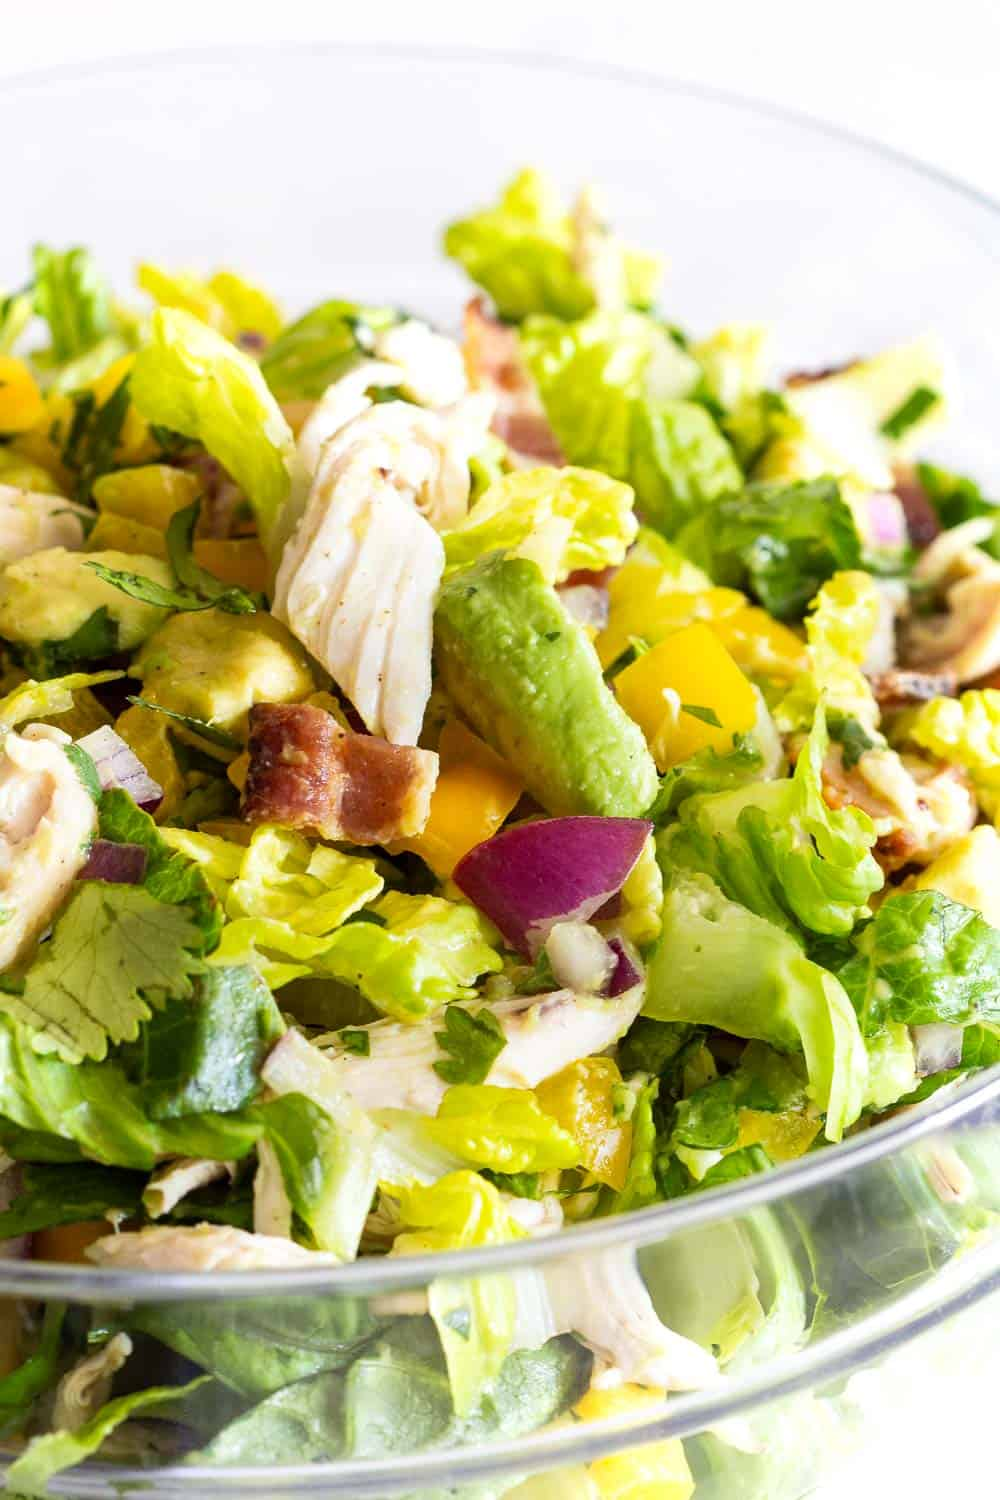 Close-up image of Chicken Avocado Salad mixed together